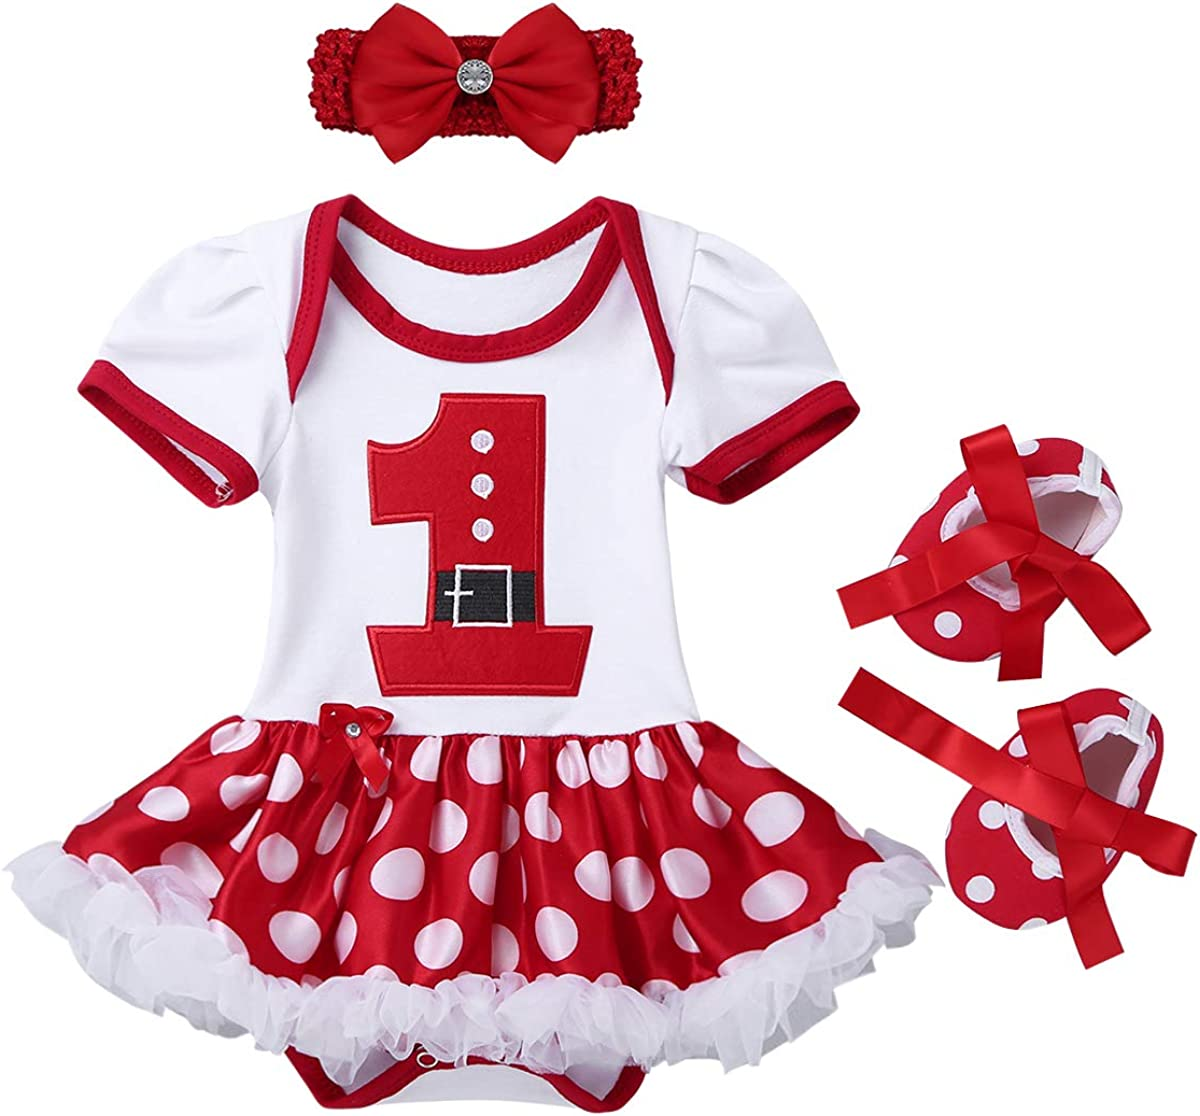 ACSUSS Infant Baby Girls Xmas Christmas Costumes Outfits Long Sleeves Romper with Bloomers Headband Oufits